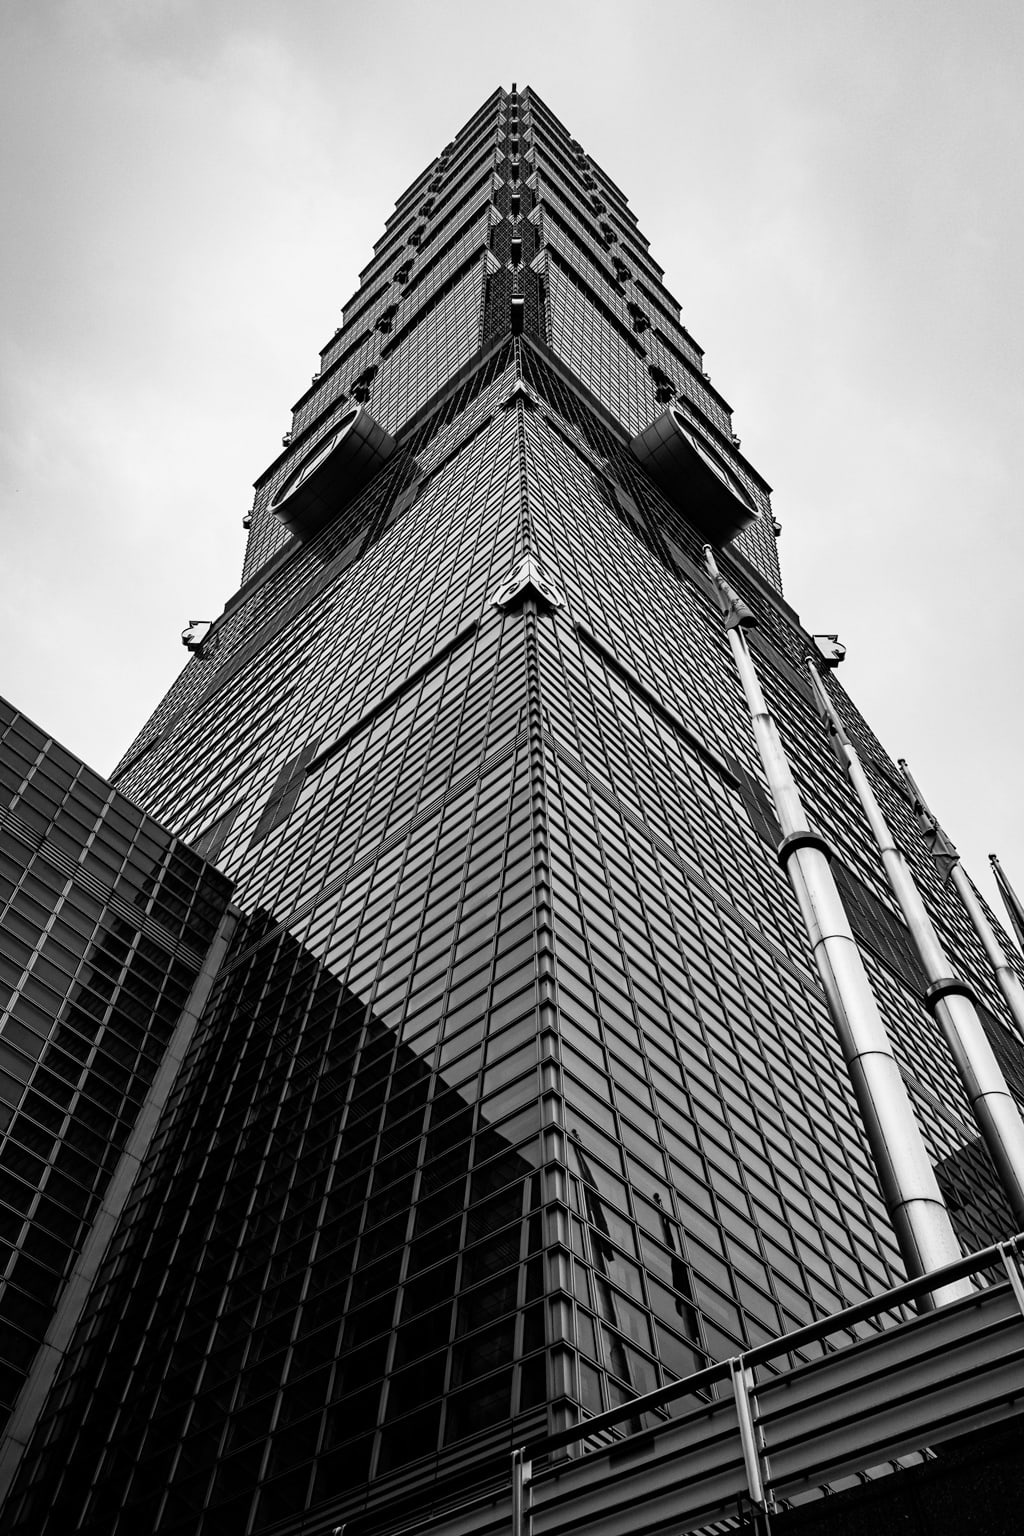 Black and white TAIPEI 101 Building. Taipei, Taiwan. Formerly known as the Taipei World Financial Centre.